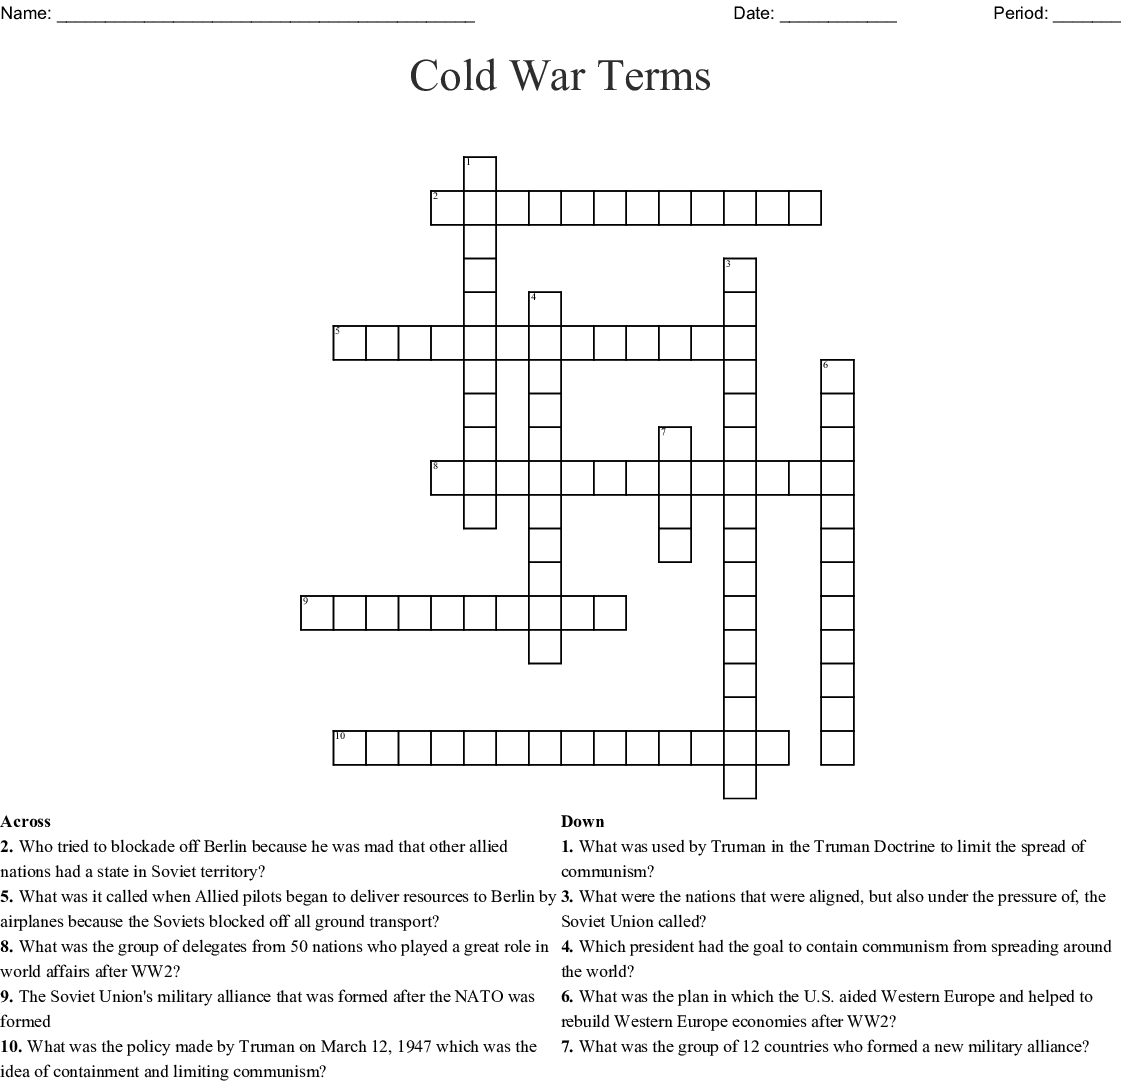 Cold War Review Crossword Puzzle Answers